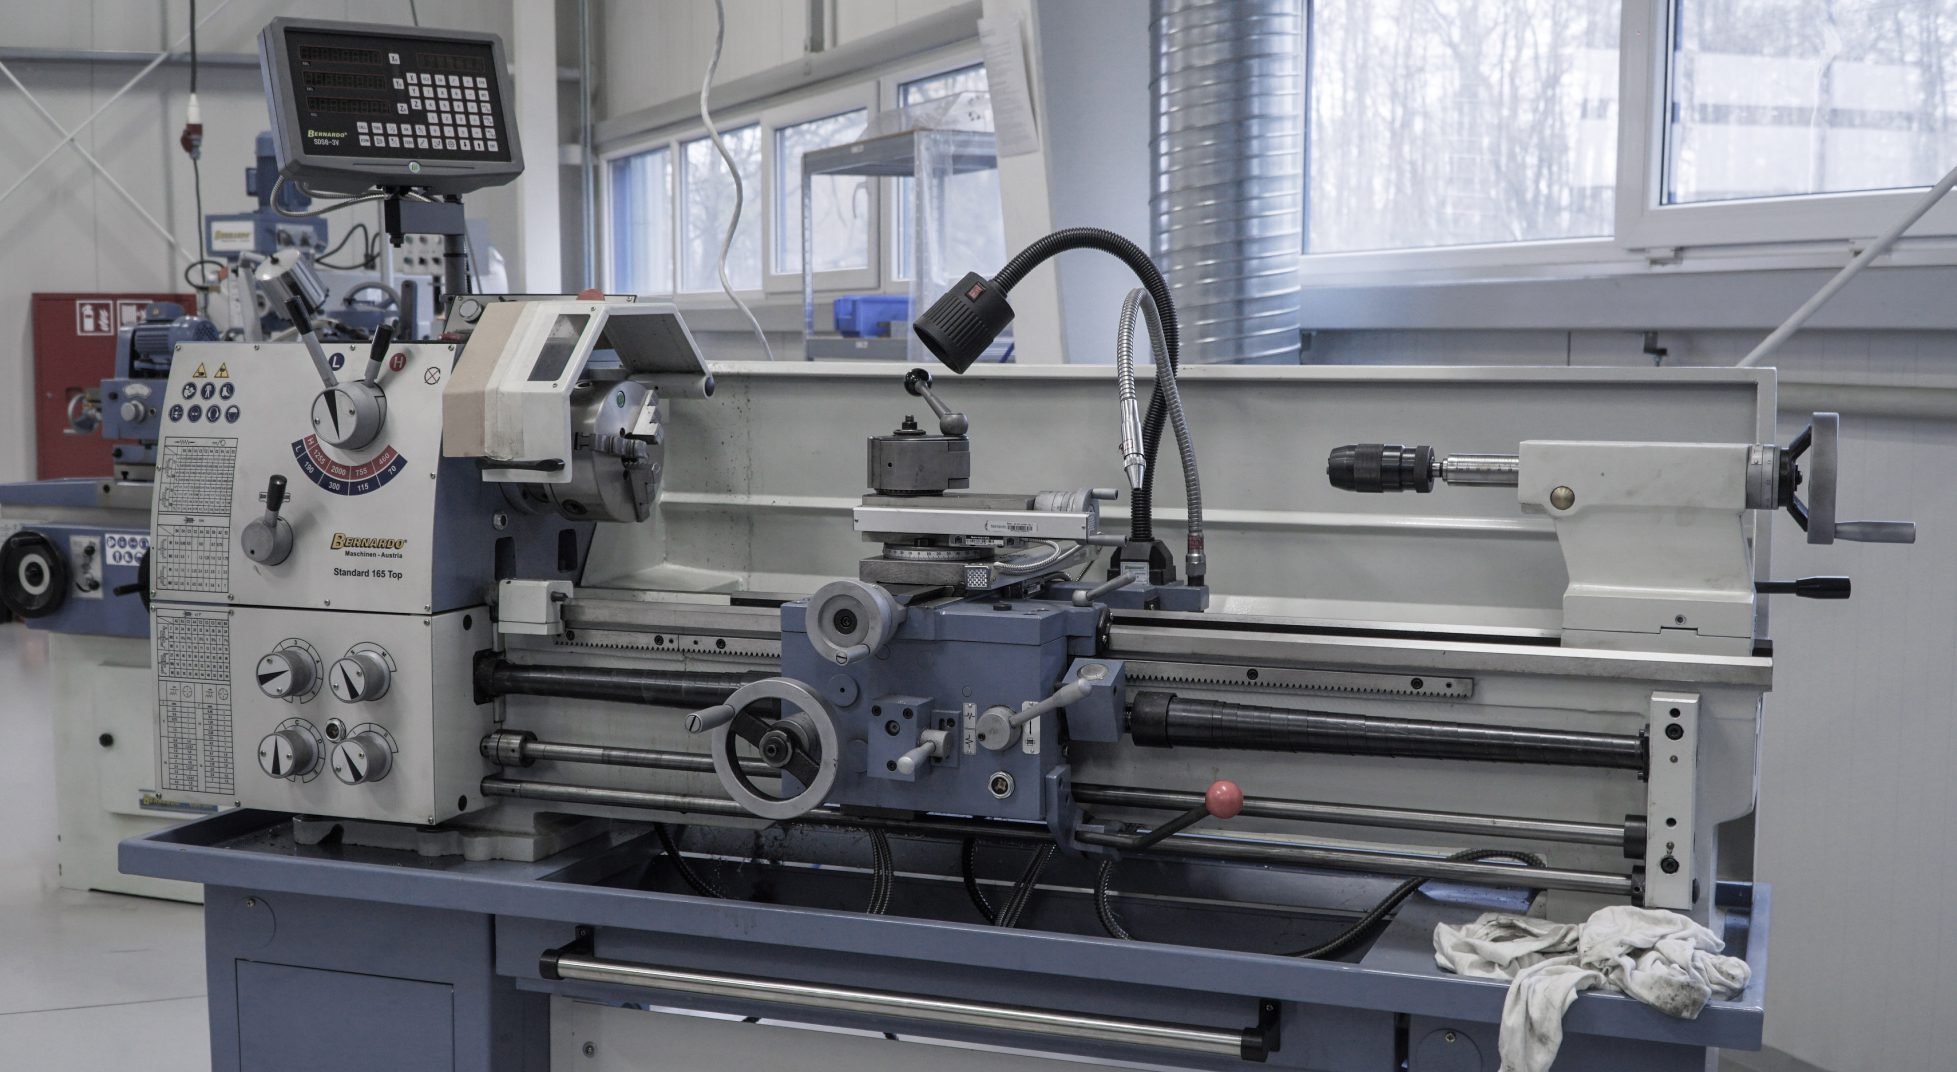 Set of machines for metalworking and welding